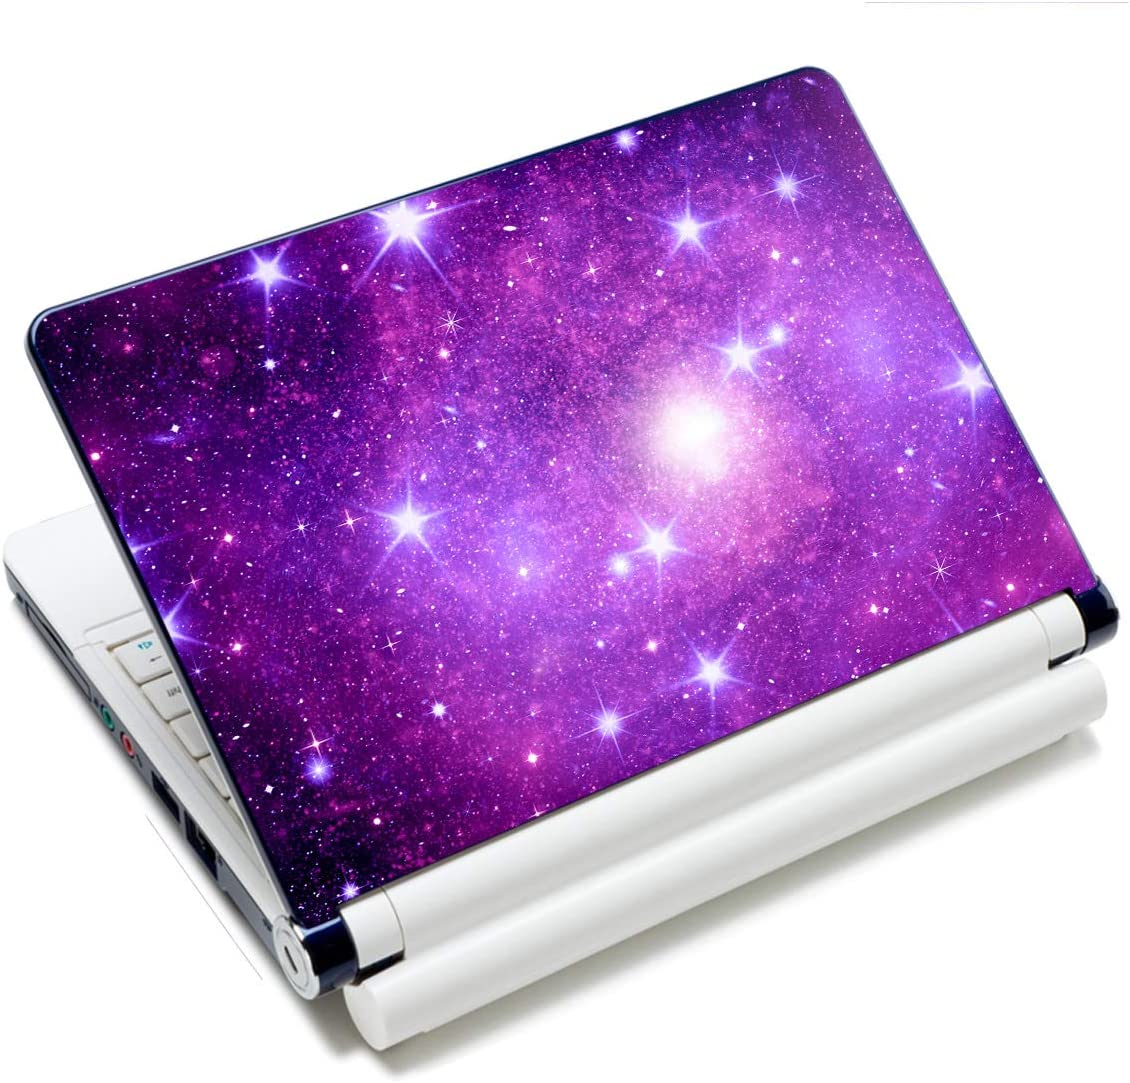 """Laptop Skin Sticker Decal,12"""" 13"""" 13.3"""" 14"""" 15"""" 15.4"""" 15.6"""" Laptop Skin Sticker Protector Cover for Toshiba Hp Samsung Dell Apple Acer Leonovo Sony Asus Laptop Notebook (Starry Sky)"""